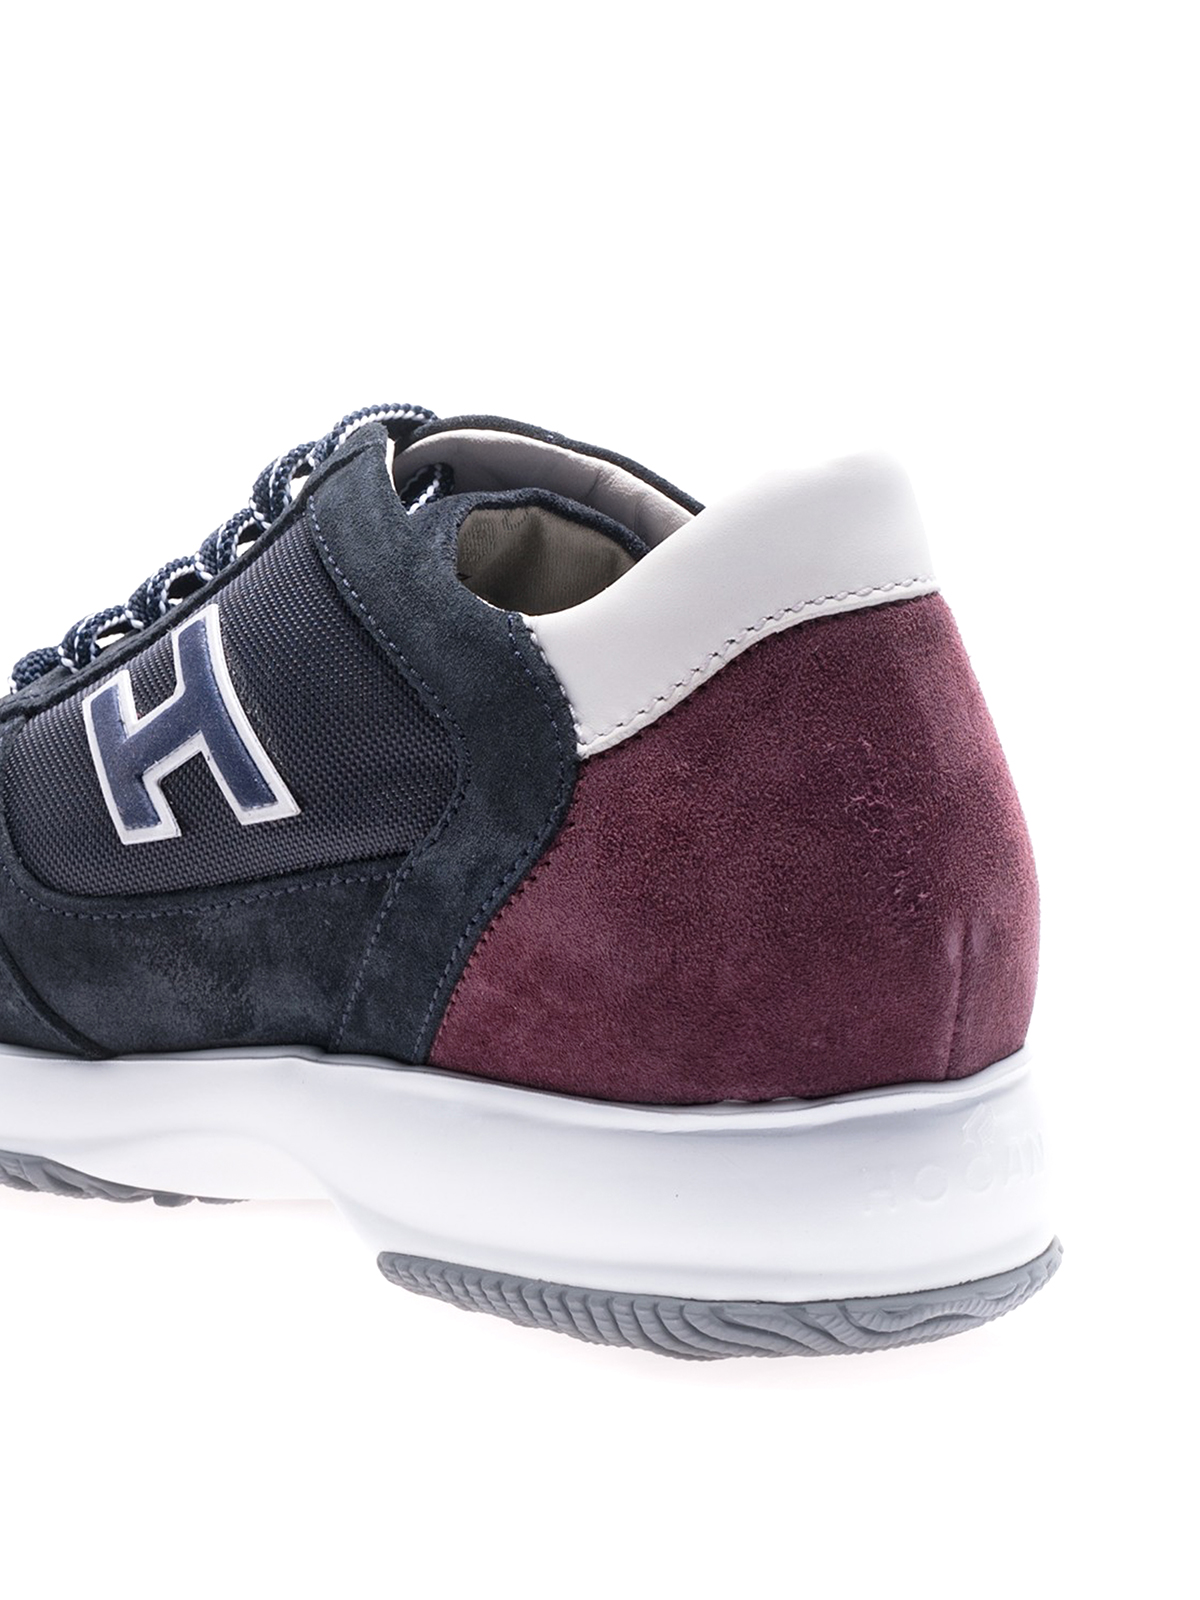 Trainers Hogan - New Interactive blue red sneakers ...